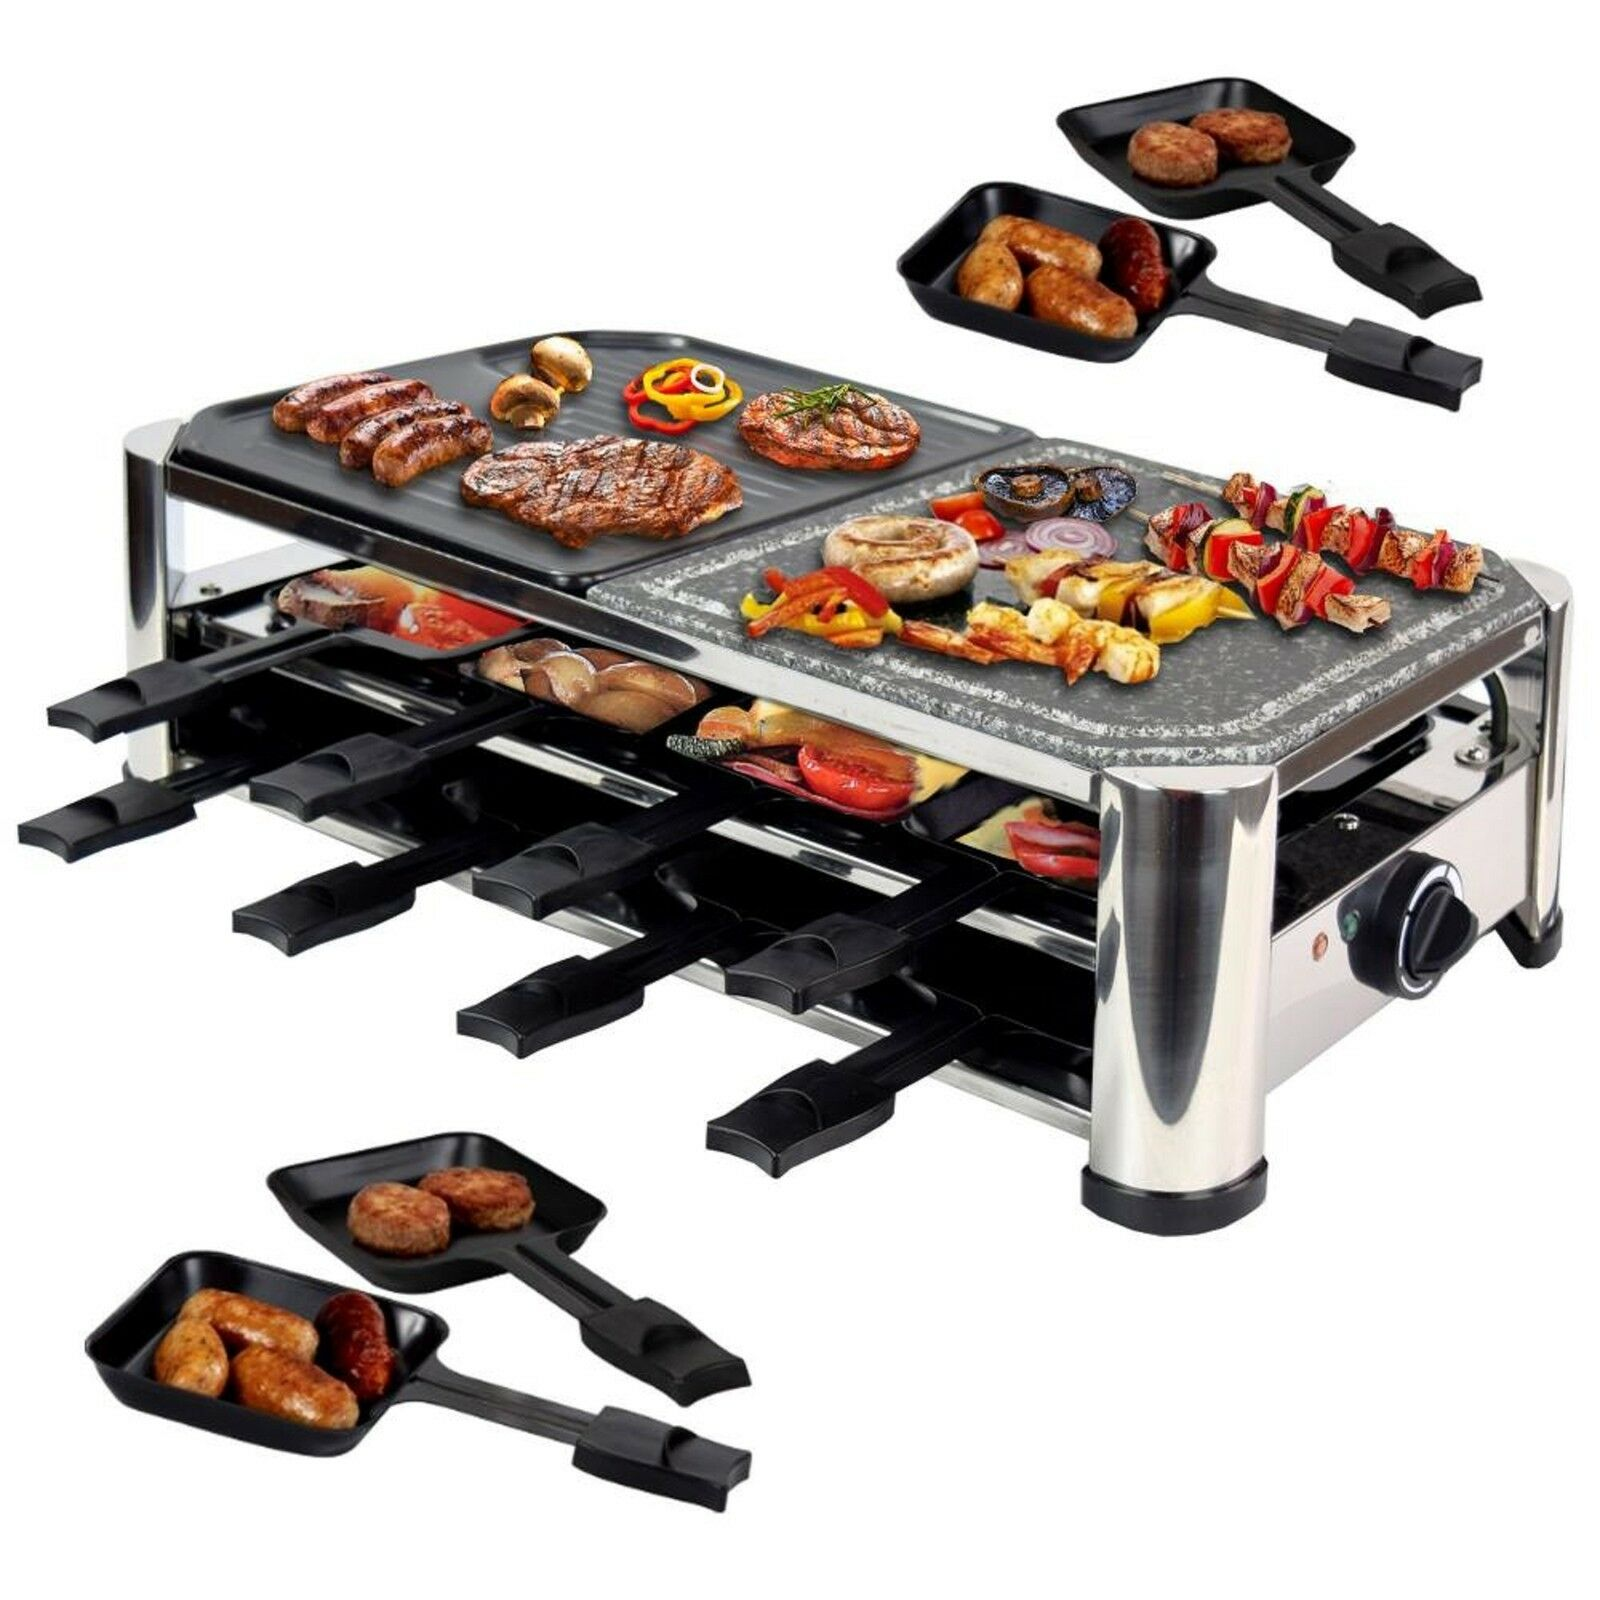 syntorx rac 1500w 16 raclette f r 8 personen mit 16 pf nnchen hei en stein eur 110 77. Black Bedroom Furniture Sets. Home Design Ideas